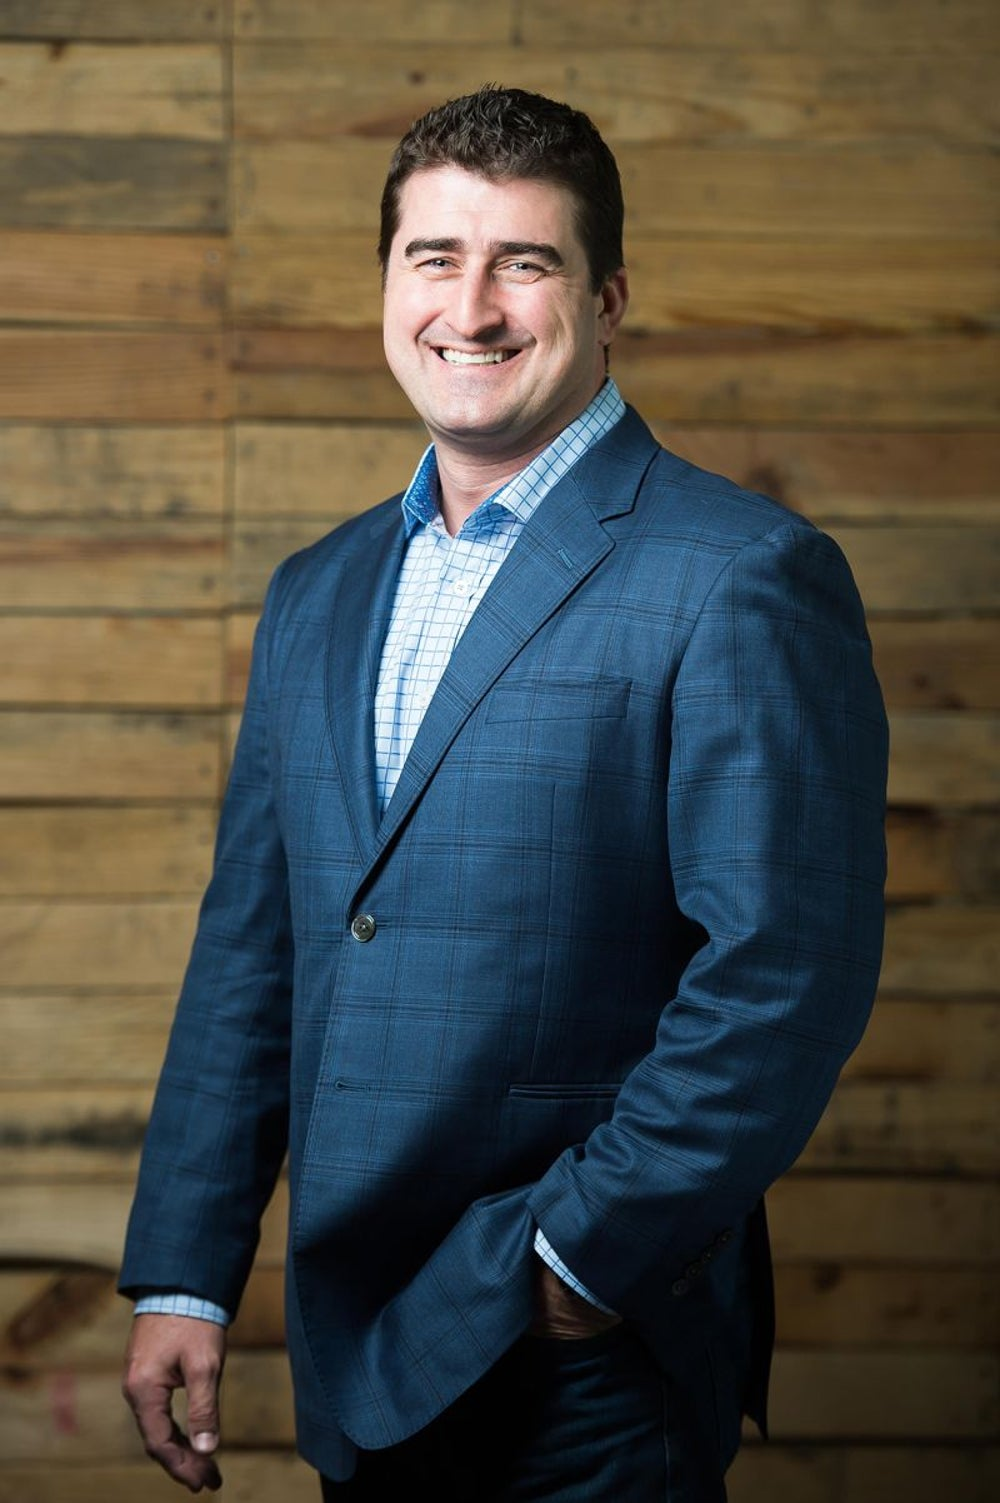 Garrett O'Shea, president and CMO of PockitShip